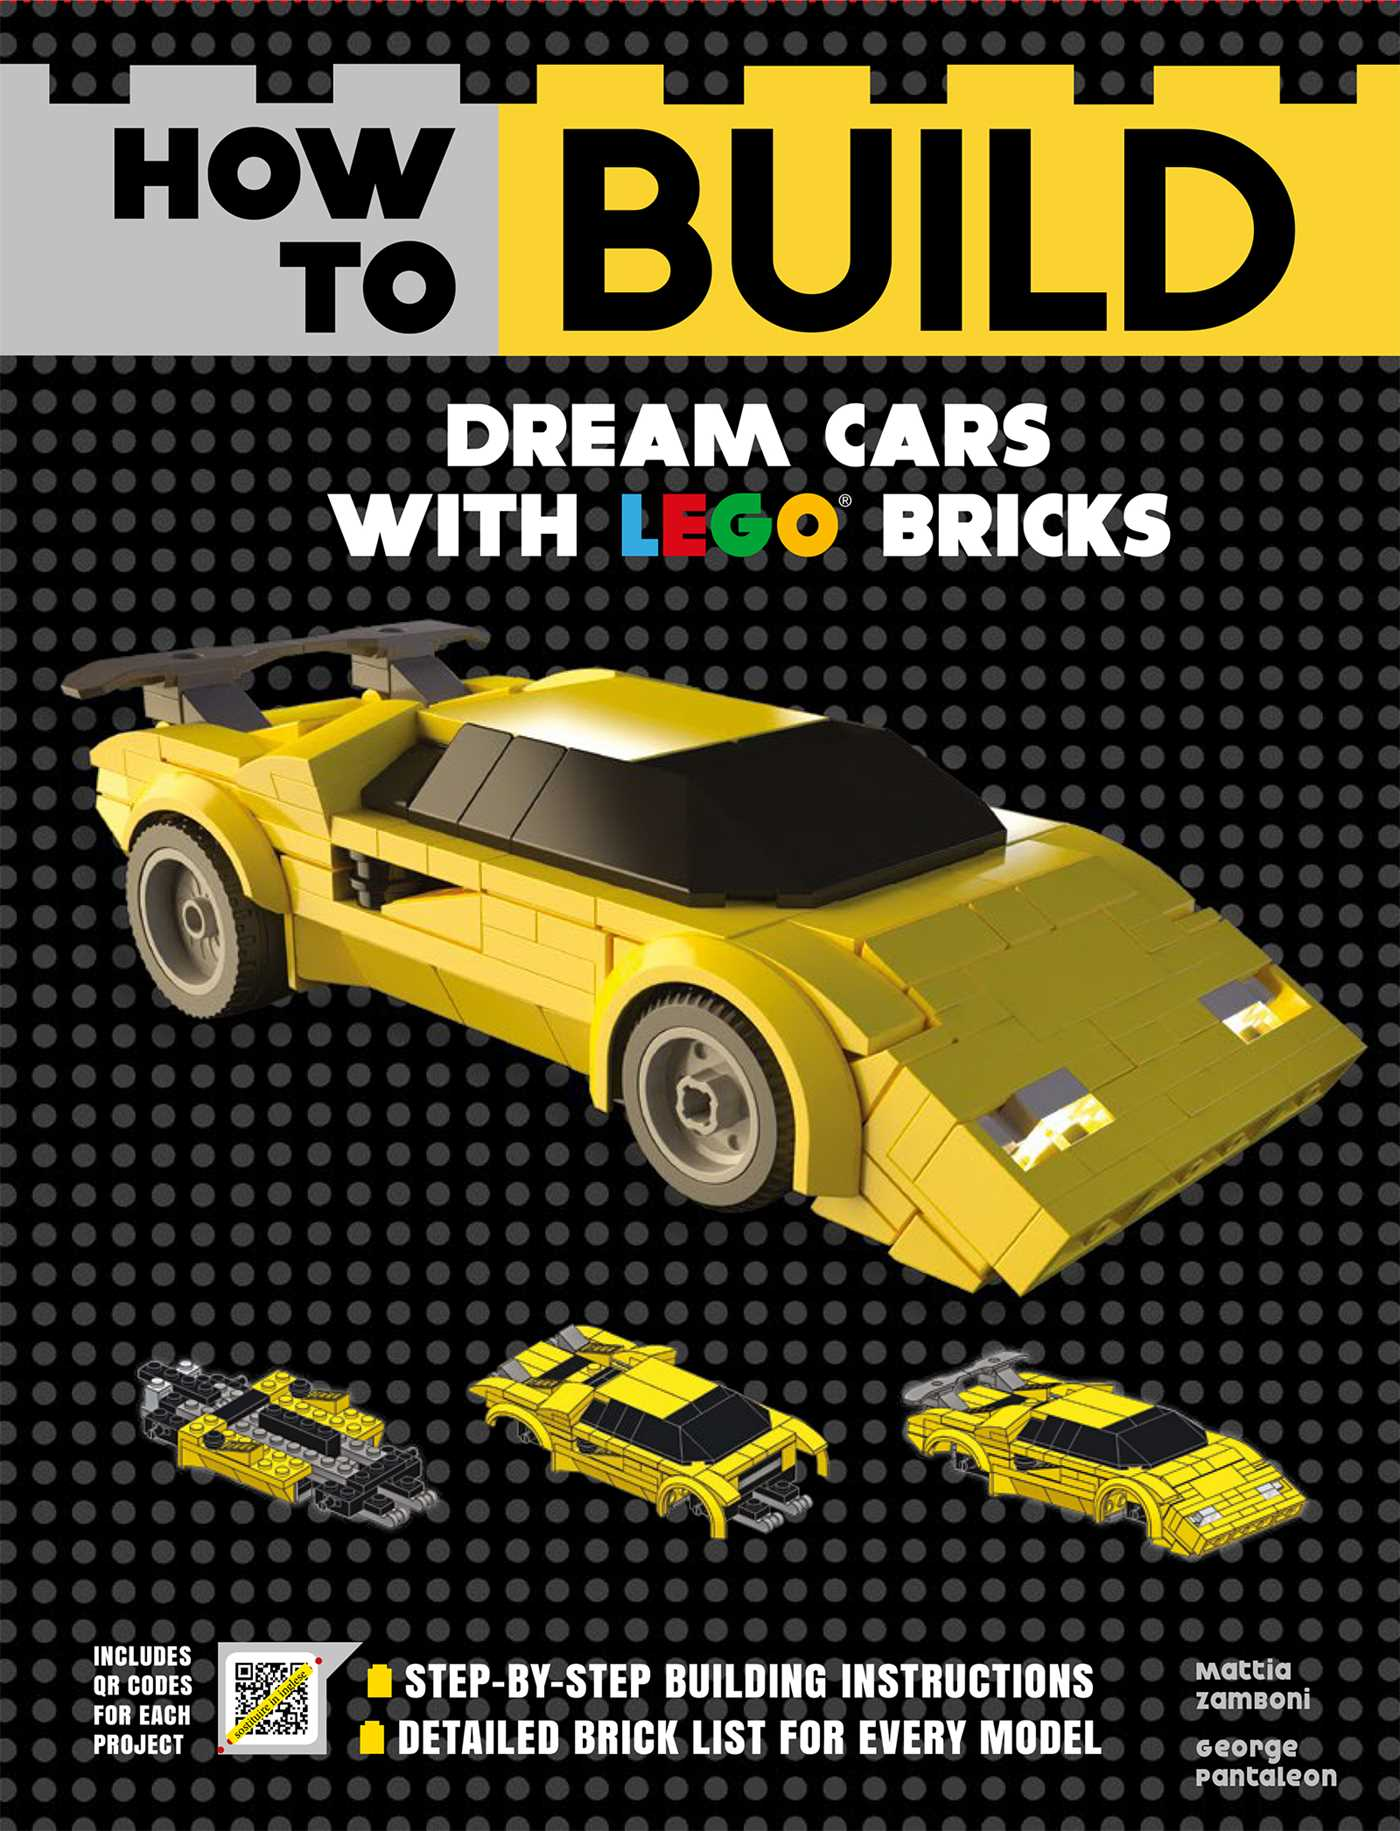 How to Build Dream Cars with LEGO Bricks | Book by Mattia